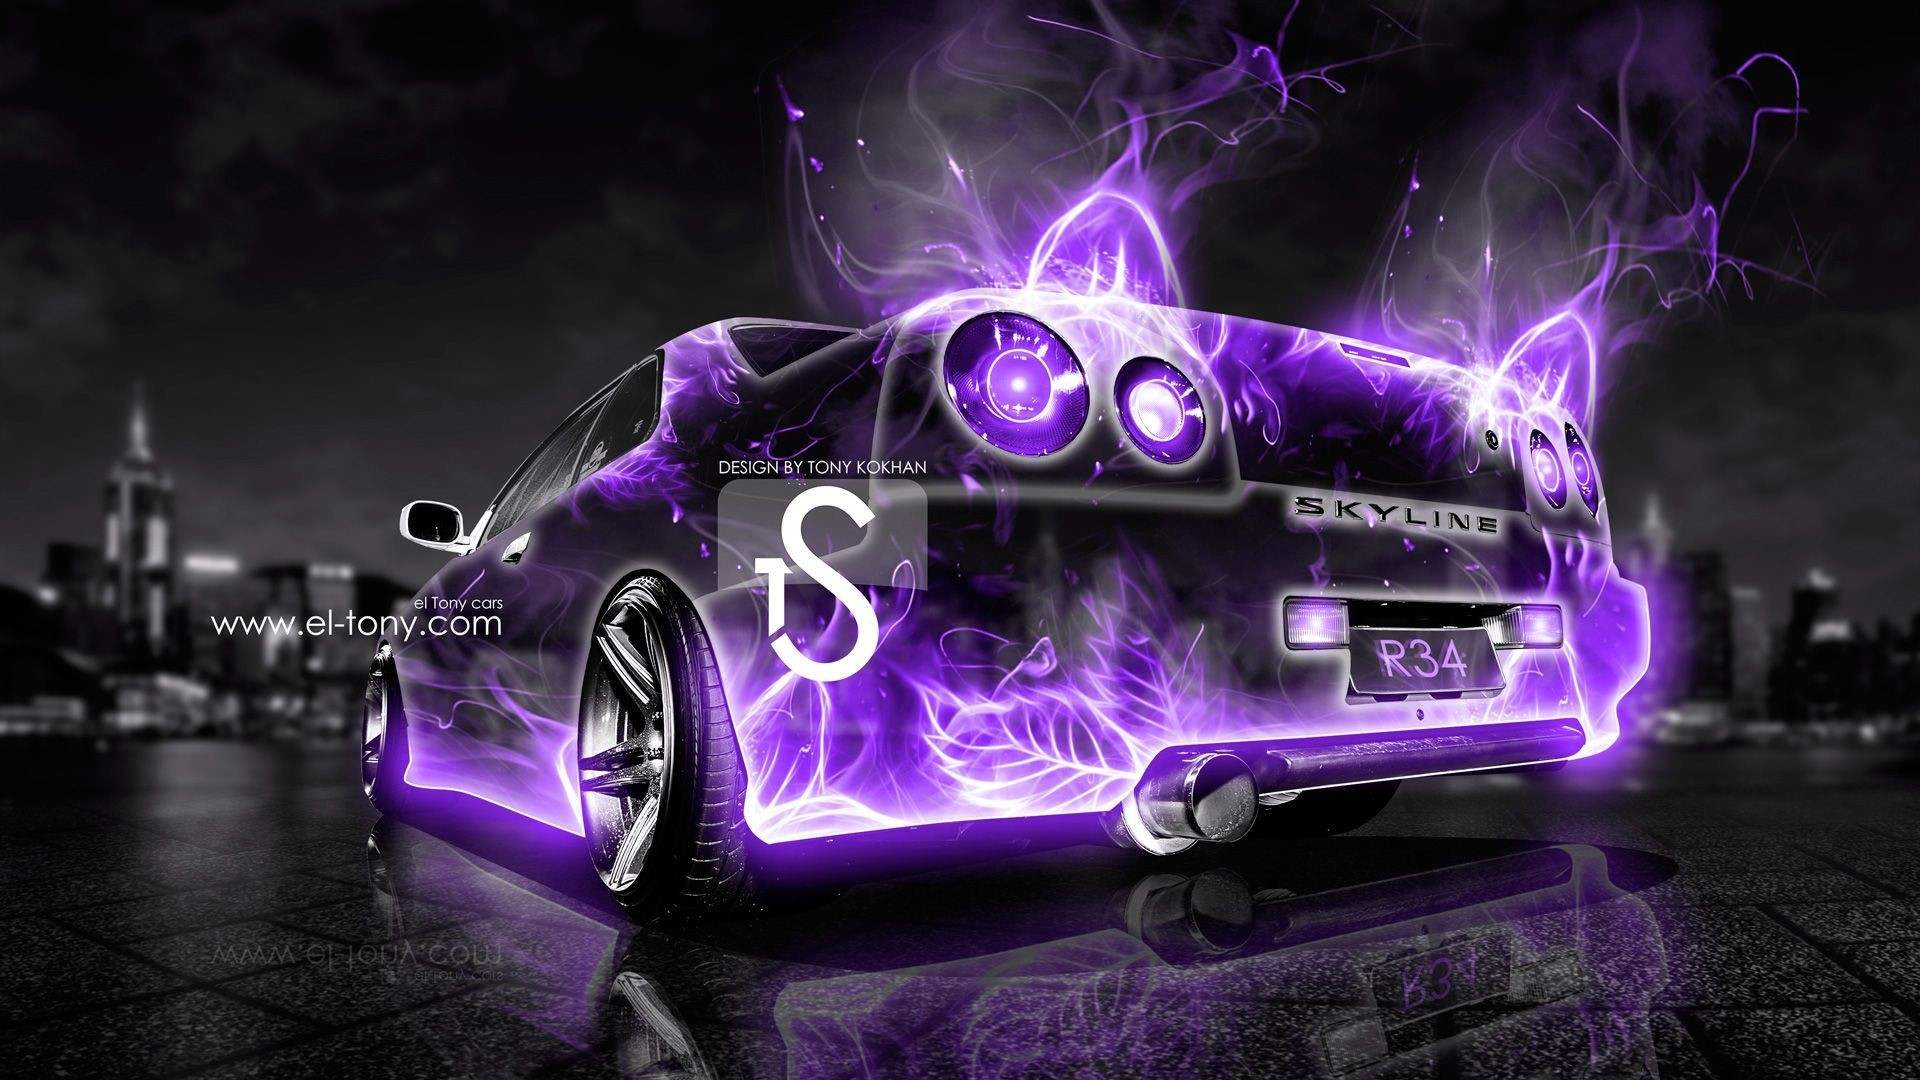 1920x1080 2013 Nissan Skyline Gtr R34 - Printable Invitation Download